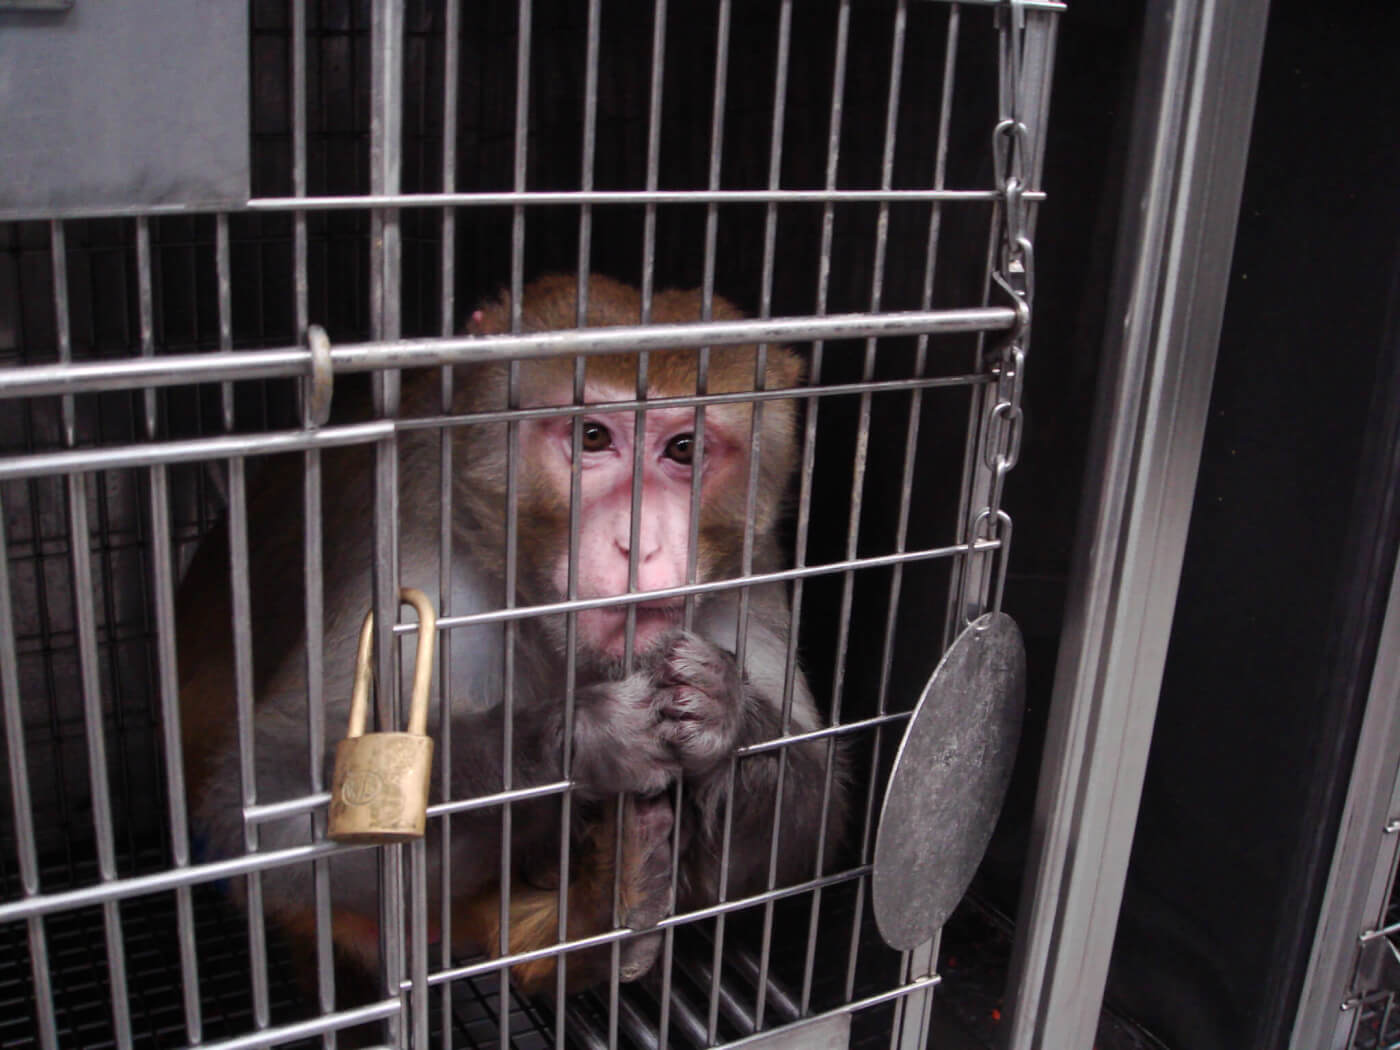 Air France: Stop Shipping Monkeys to Labs for COVID-19 or Any Other Reason